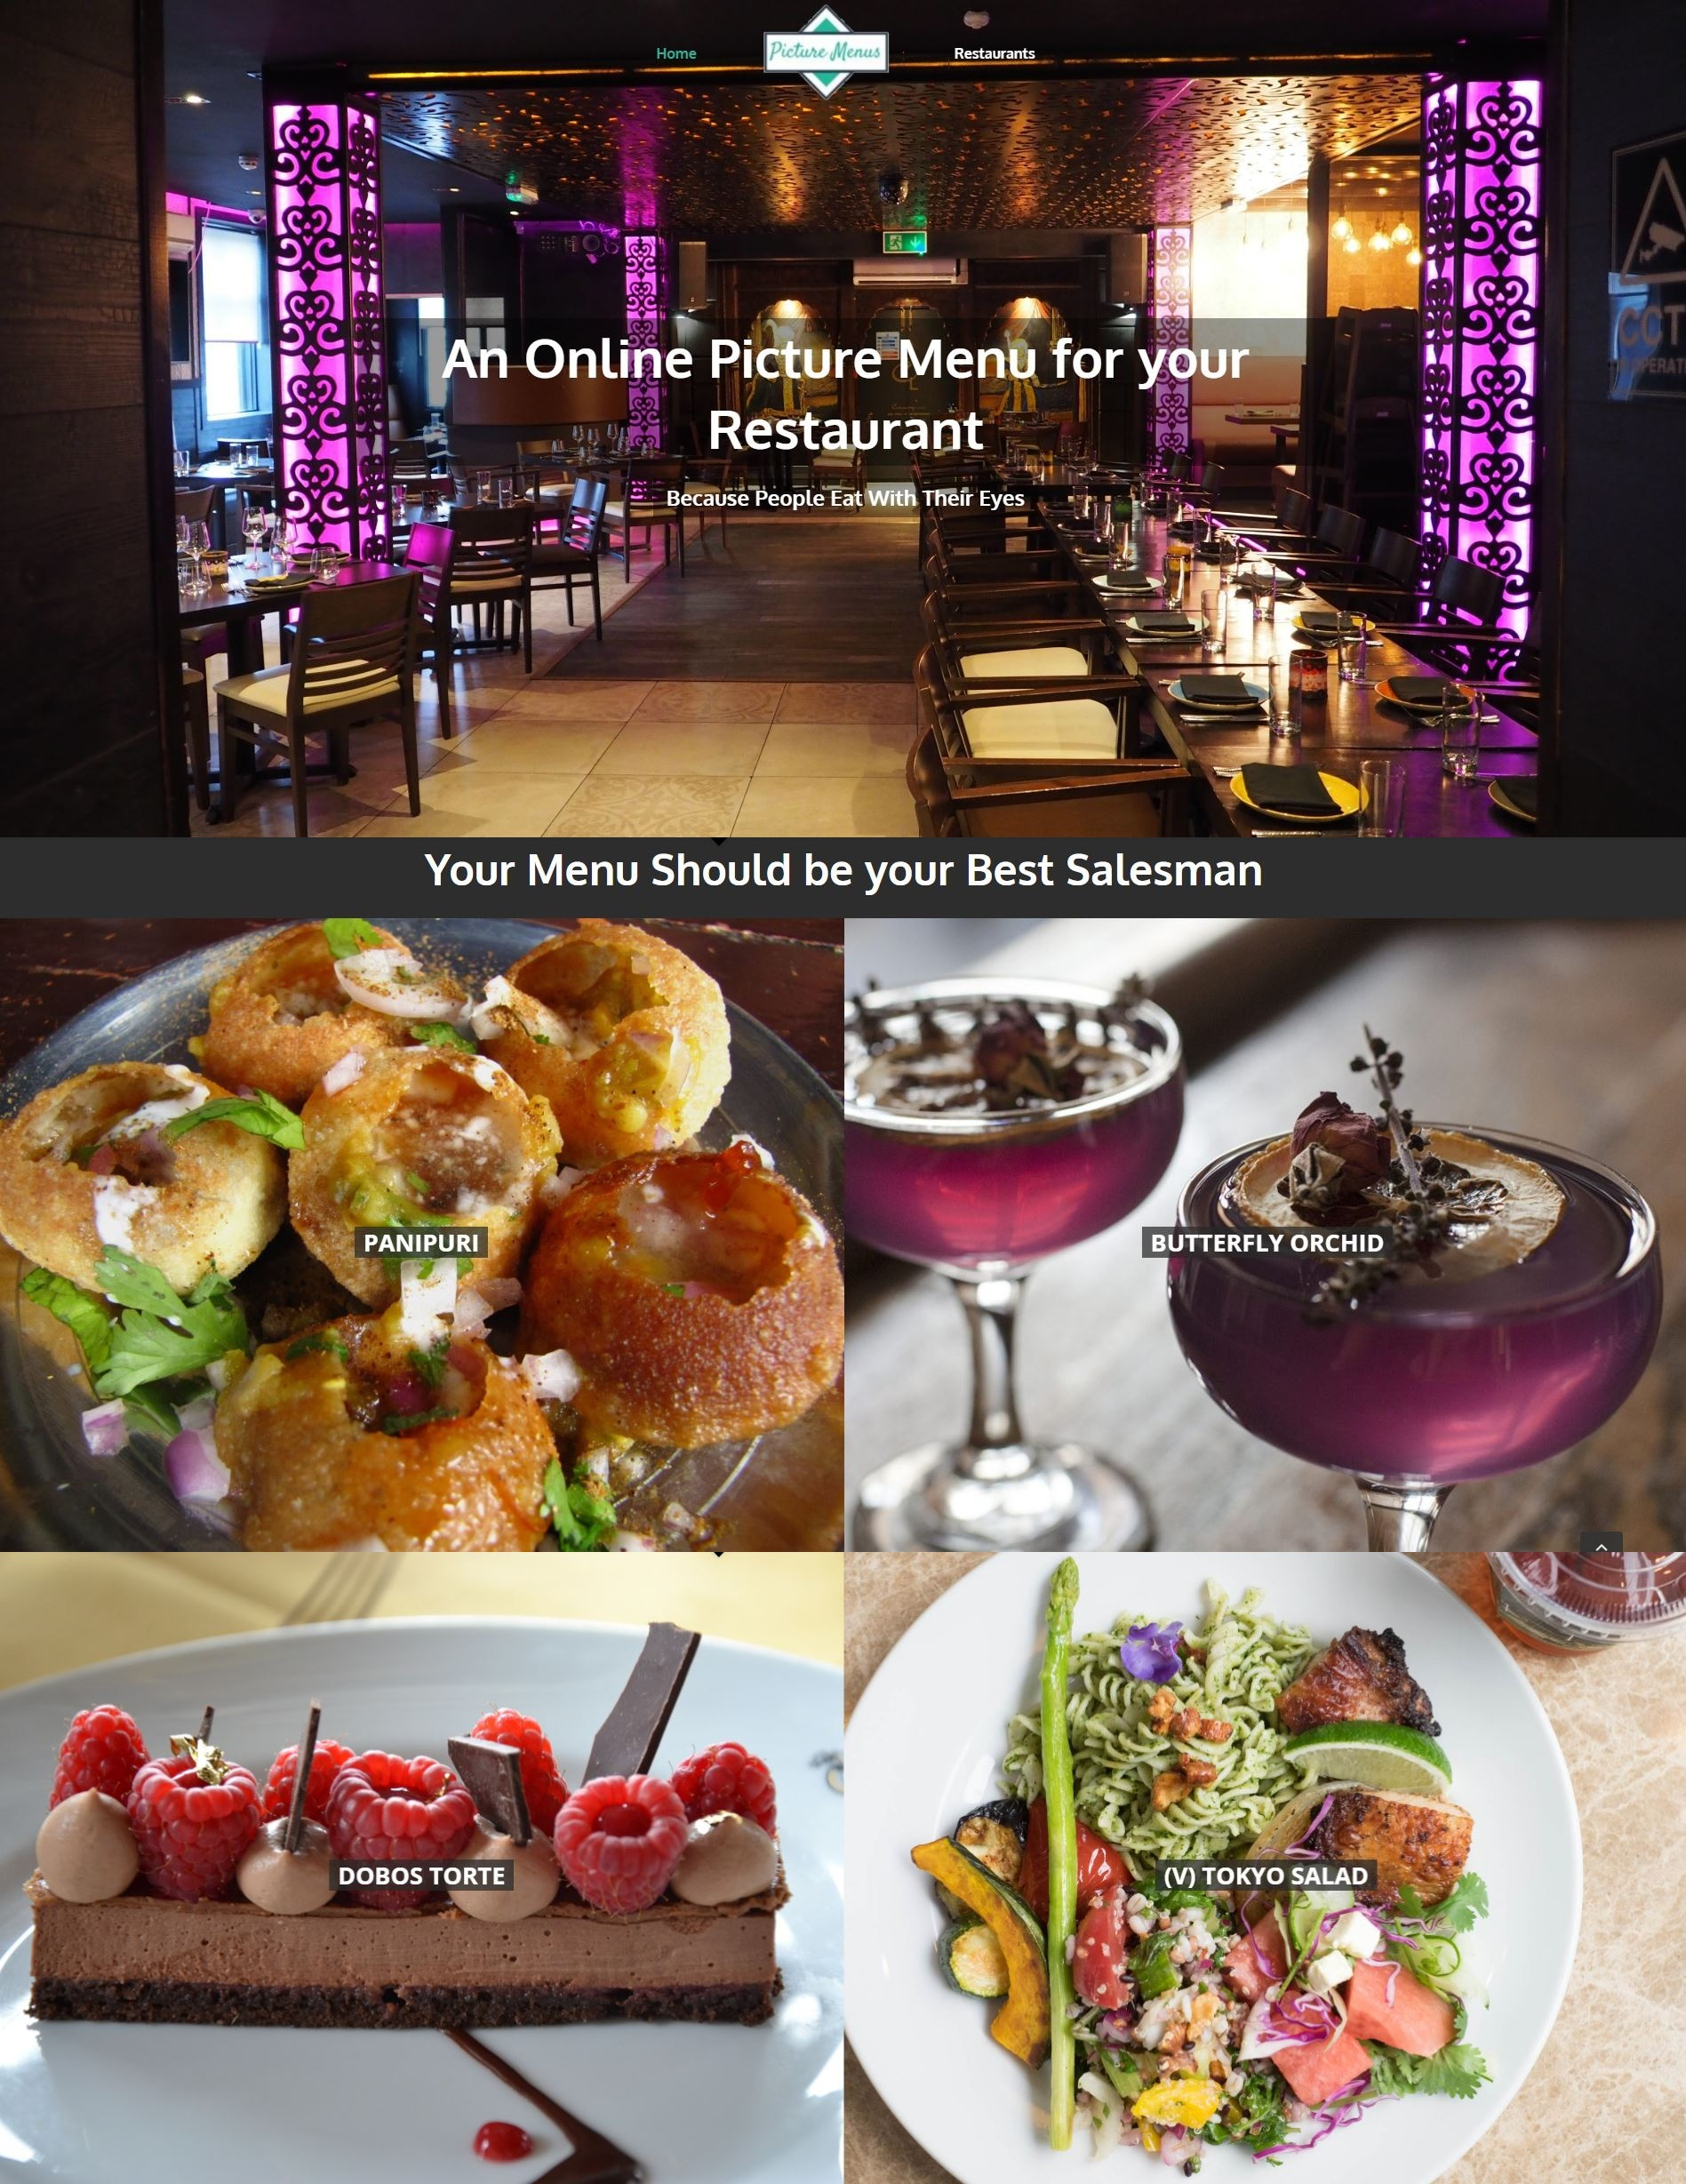 Get an Online Picture Menu for your Restaurant